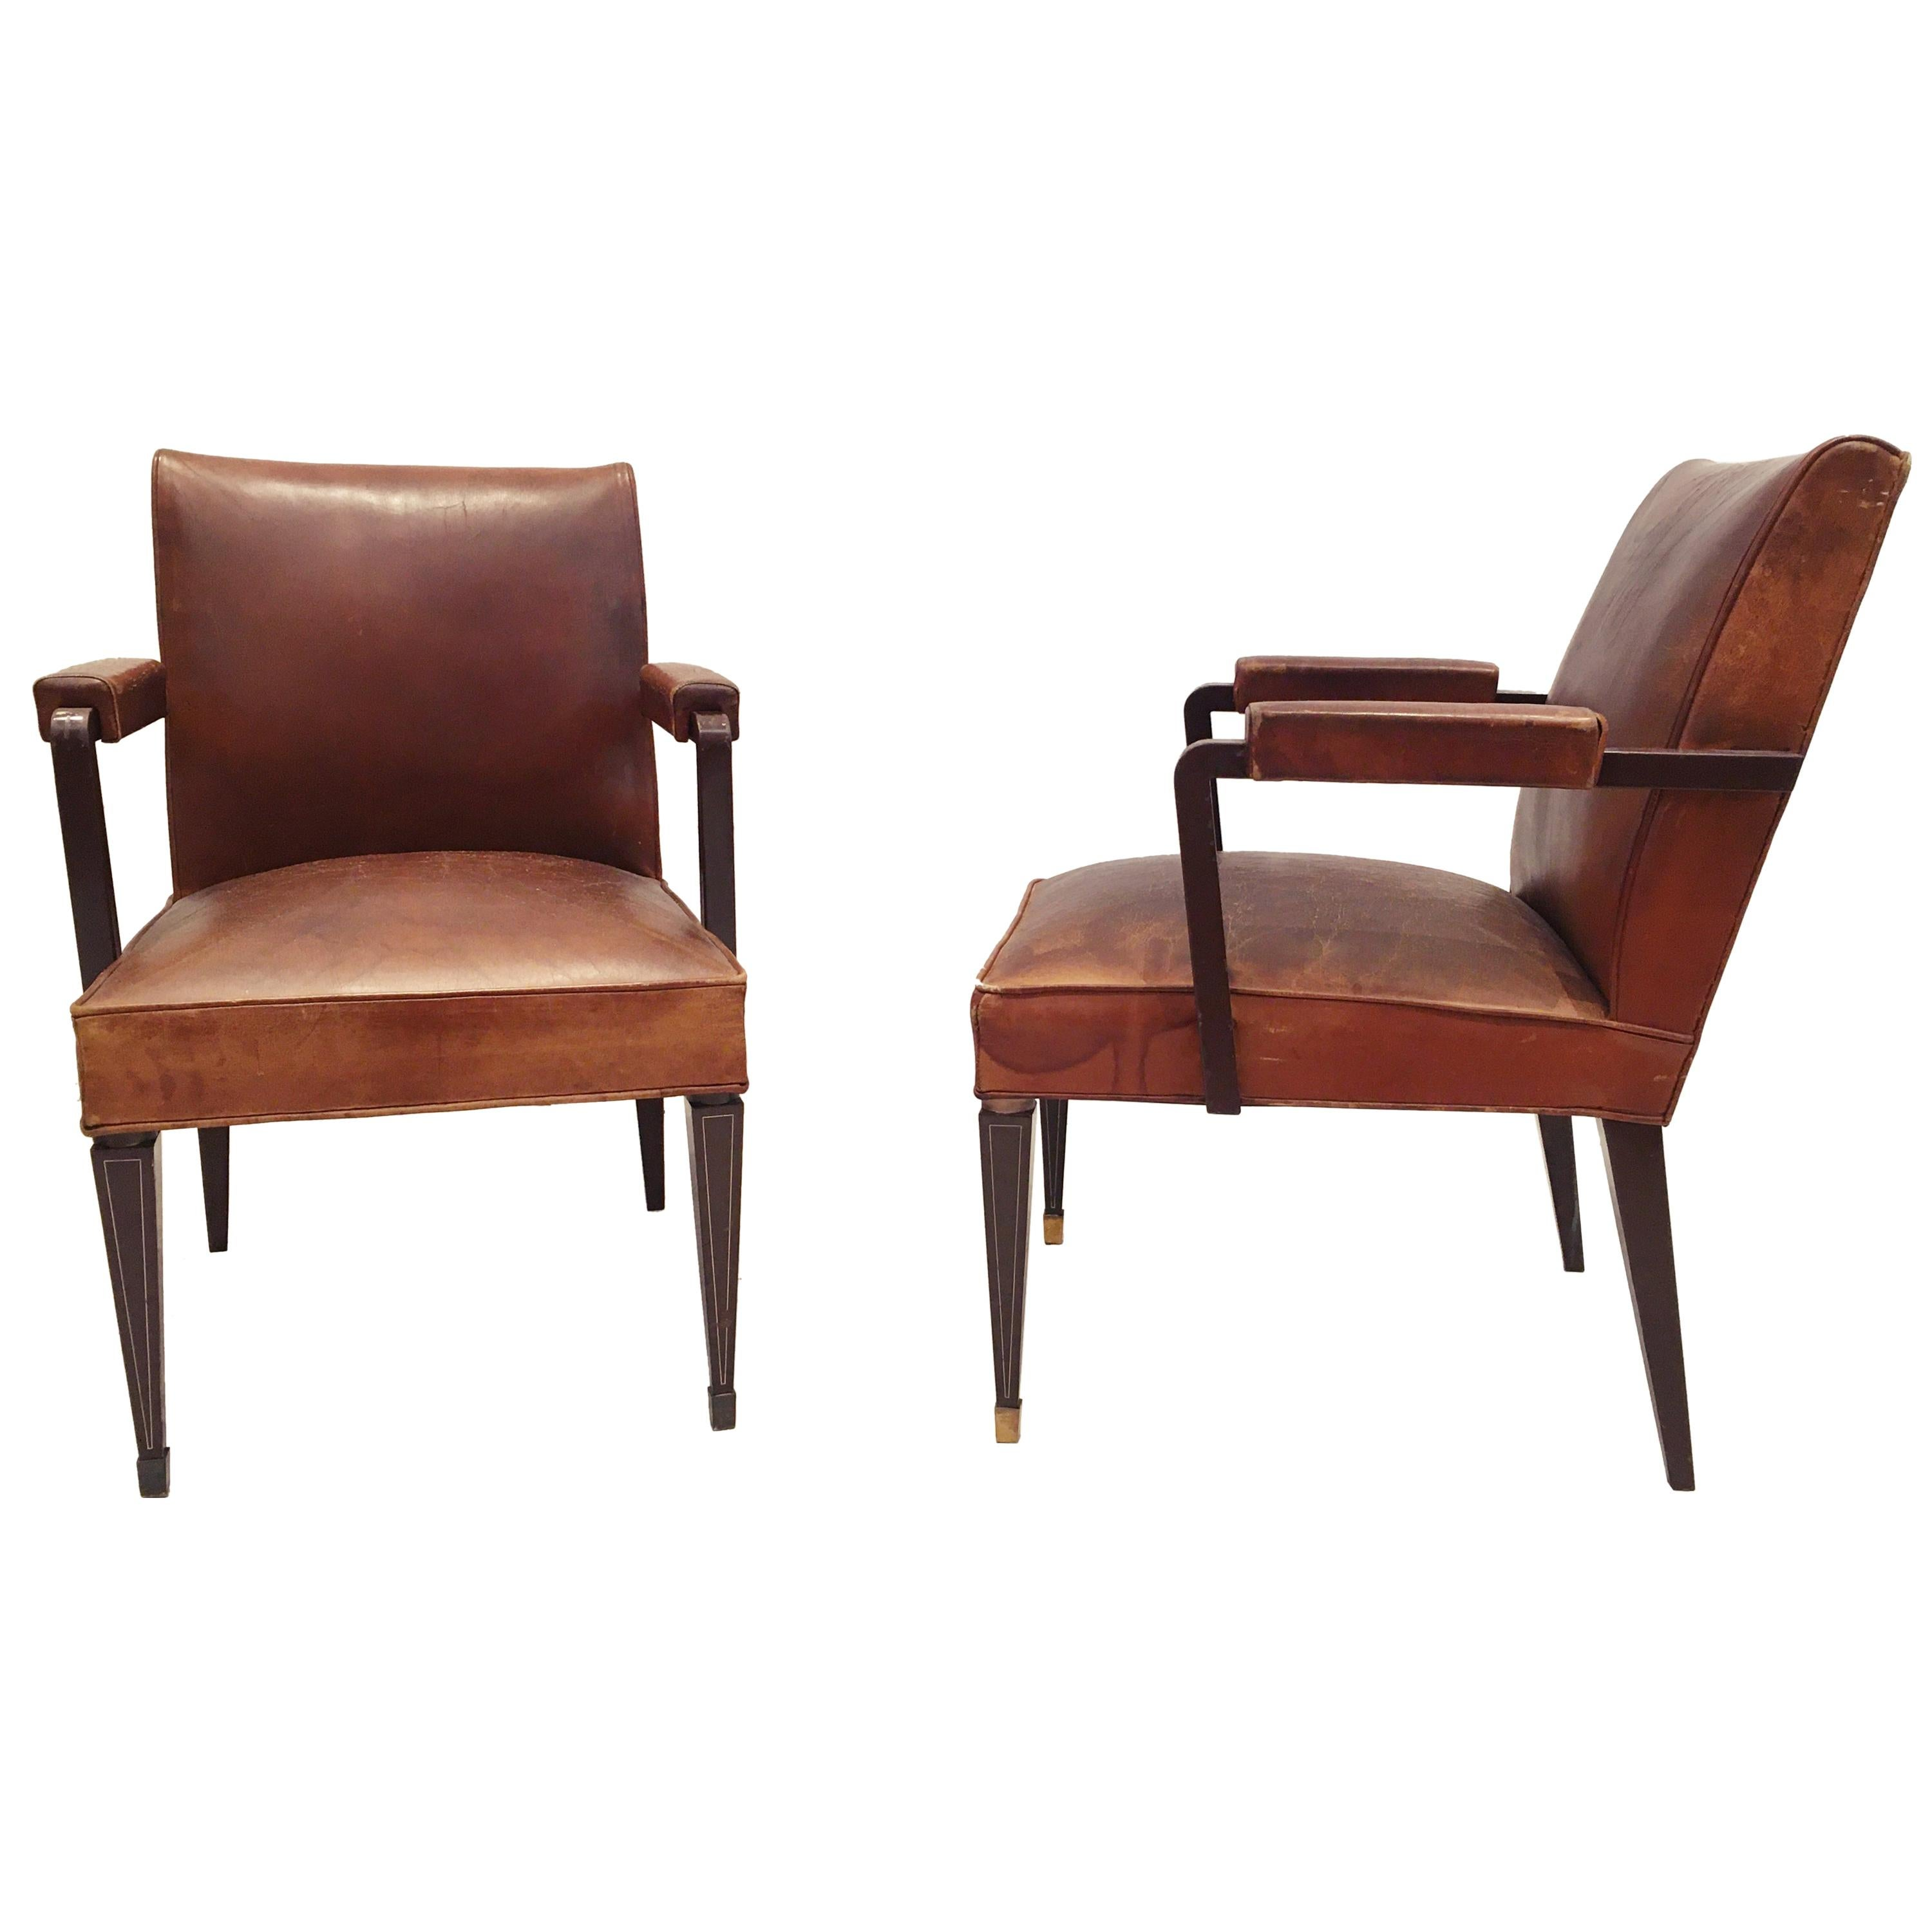 Pair of Armchairs by Jansen